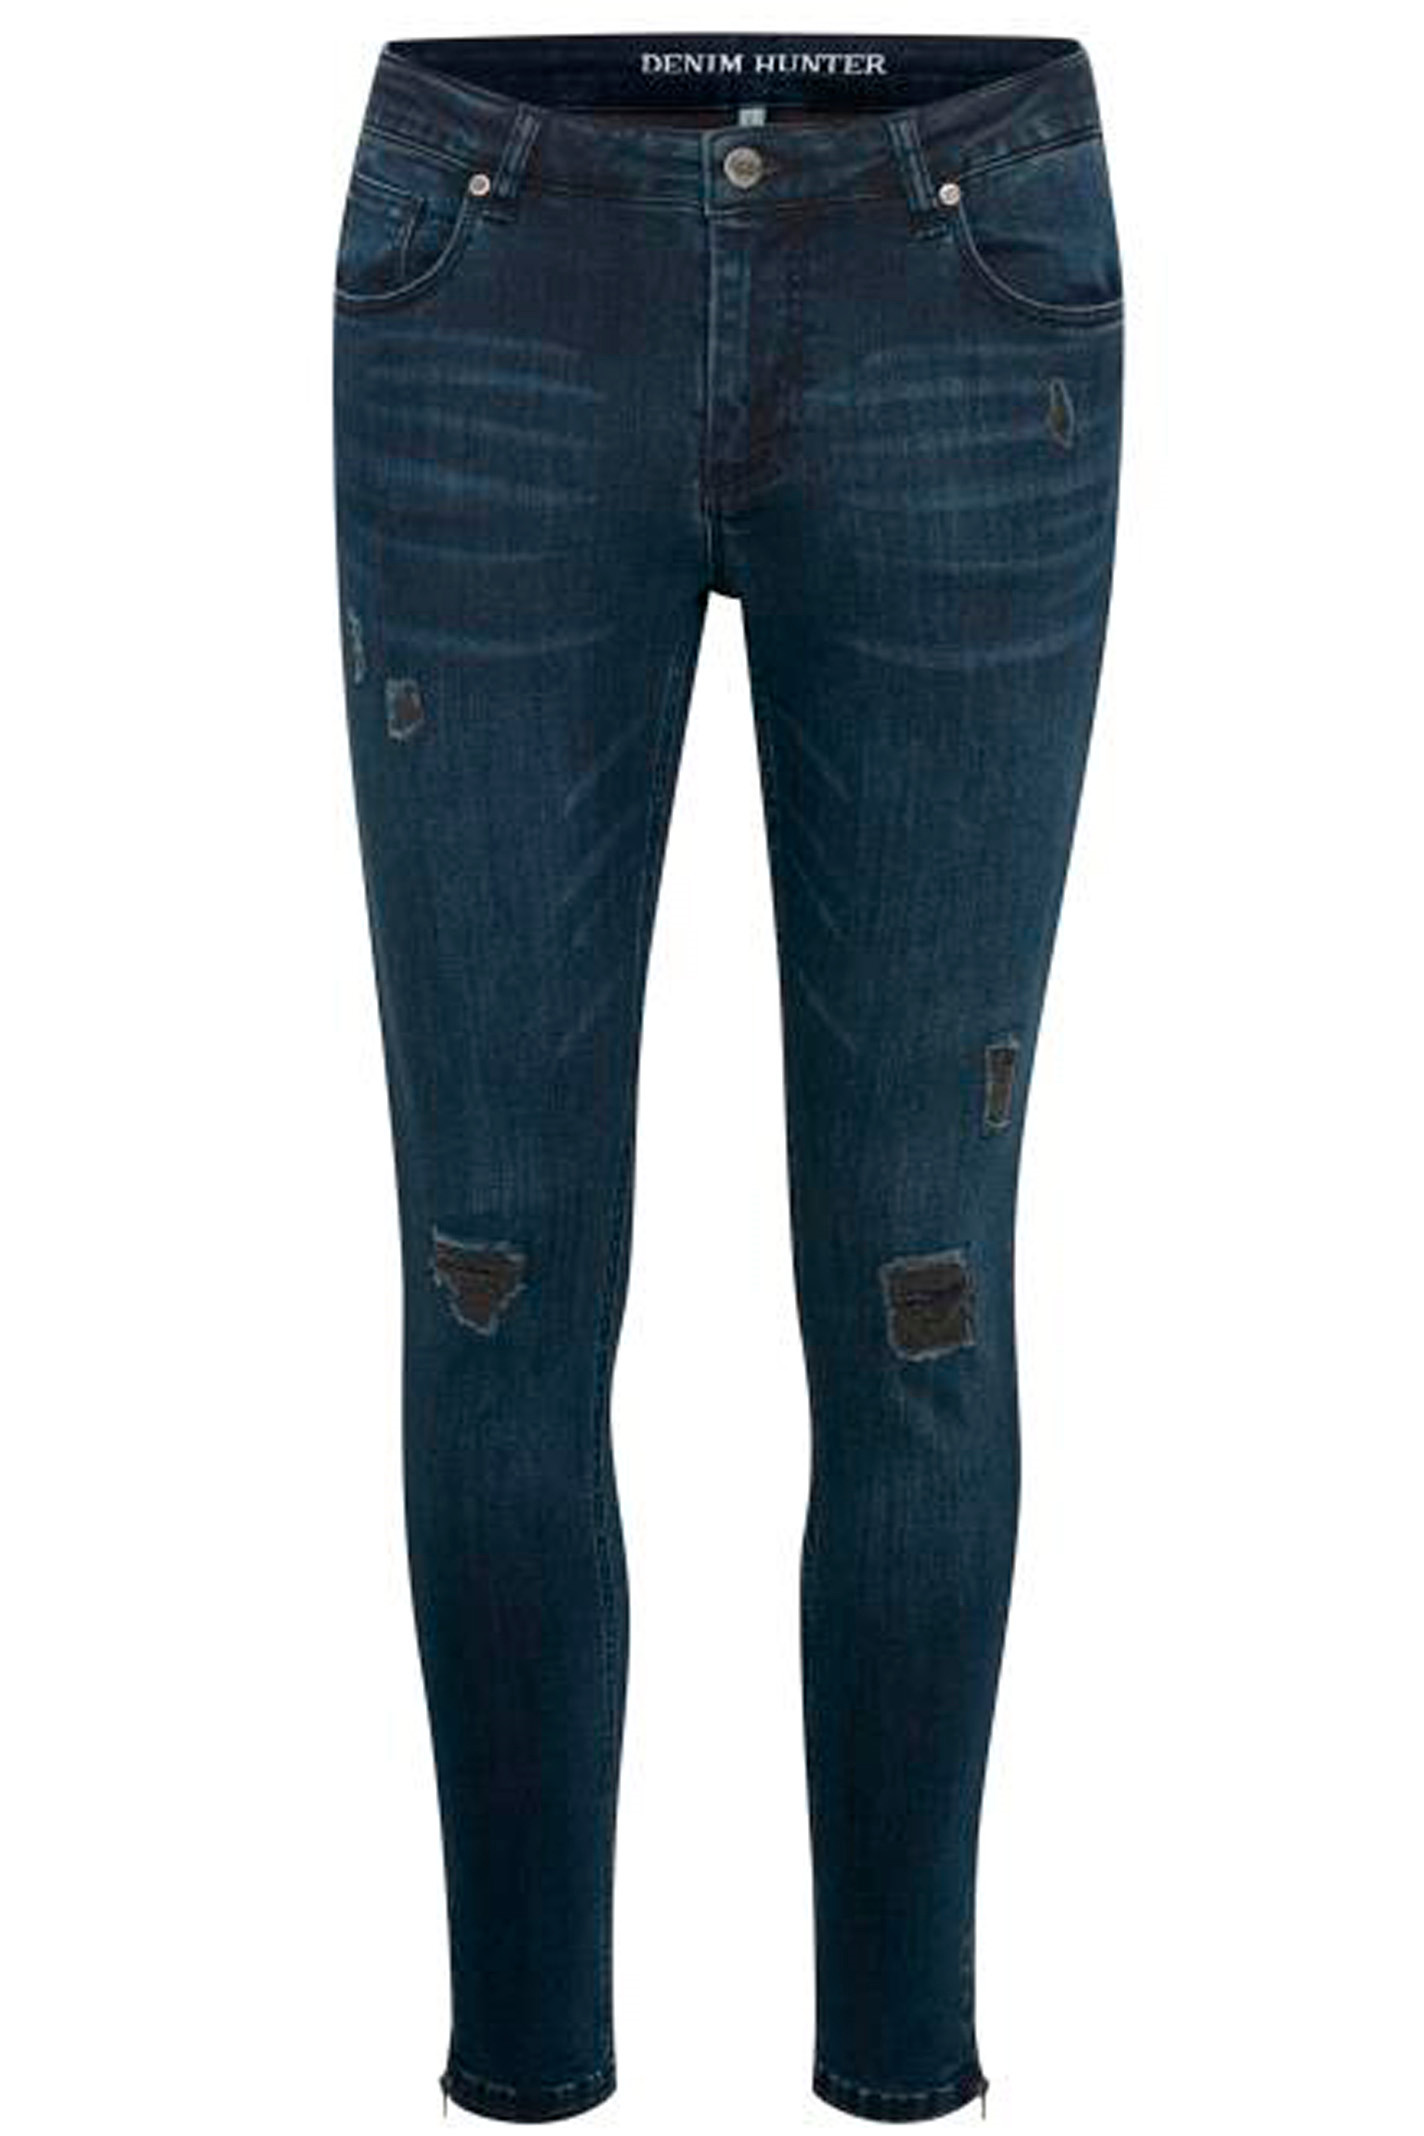 DENIM HUNTER CELINA ZIP TORN 10701894 MØRK BLÅ DENIM